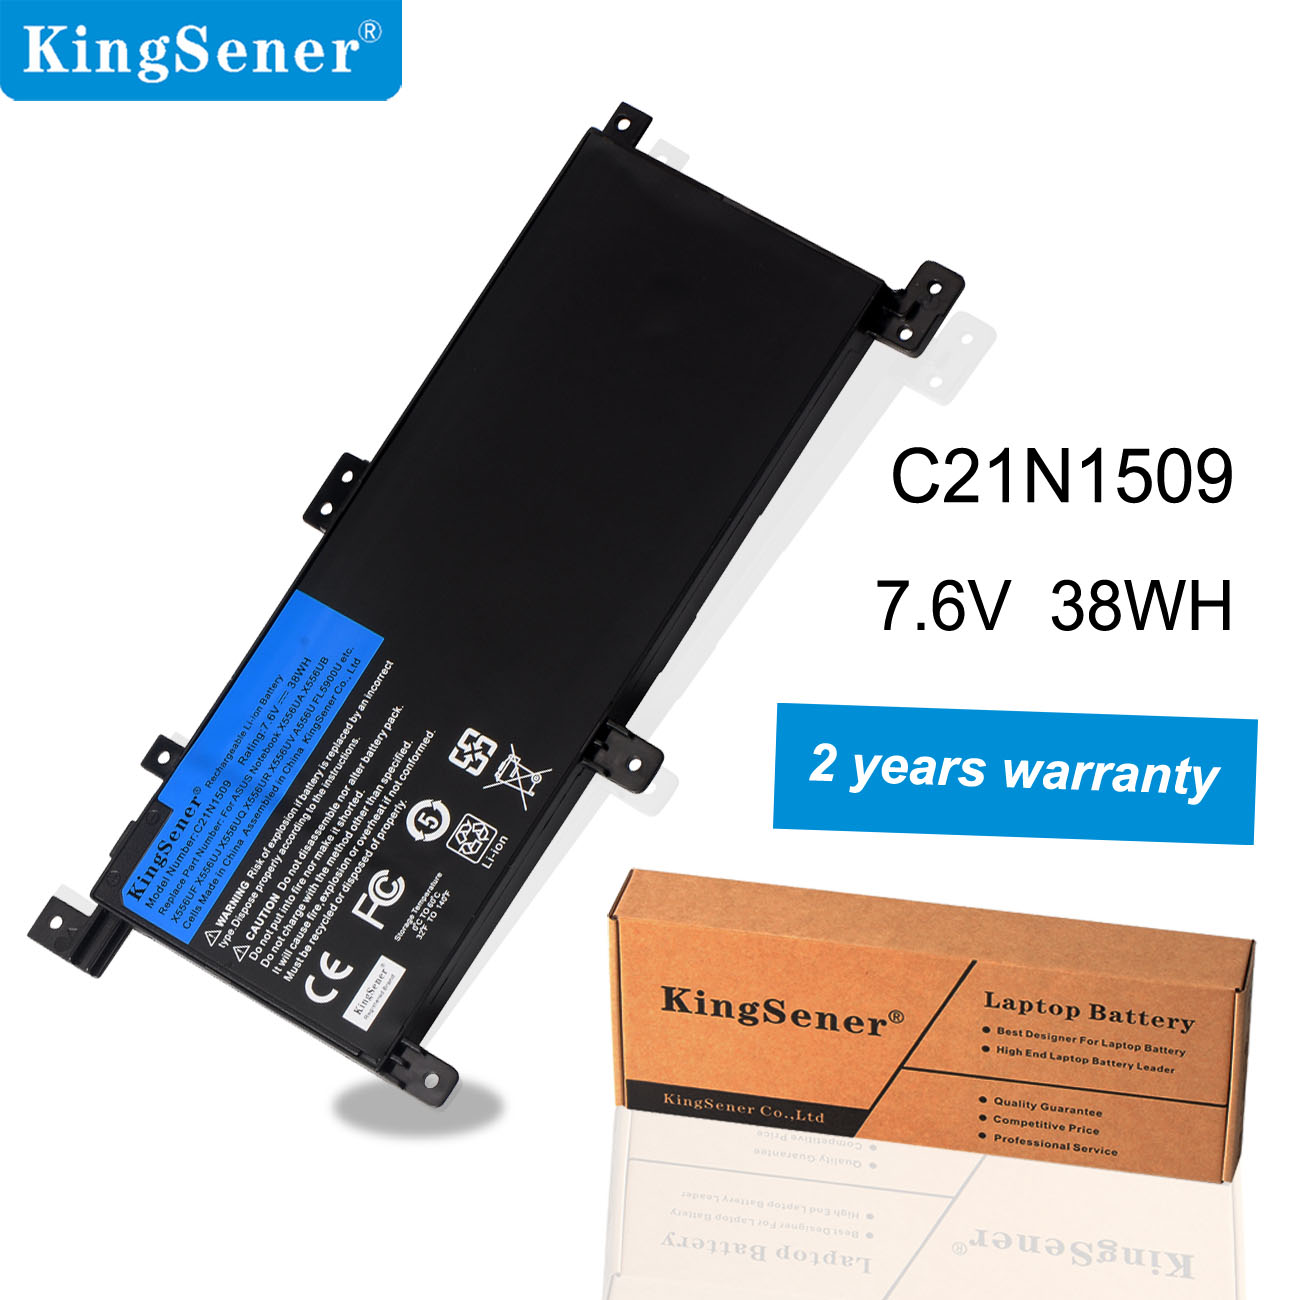 KingSener New C21N1509 Laptop Battery For ASUS Notebook X556UA X556UB X556UF X556UJ X556UQ X556UR X556UV A556U FL5900U